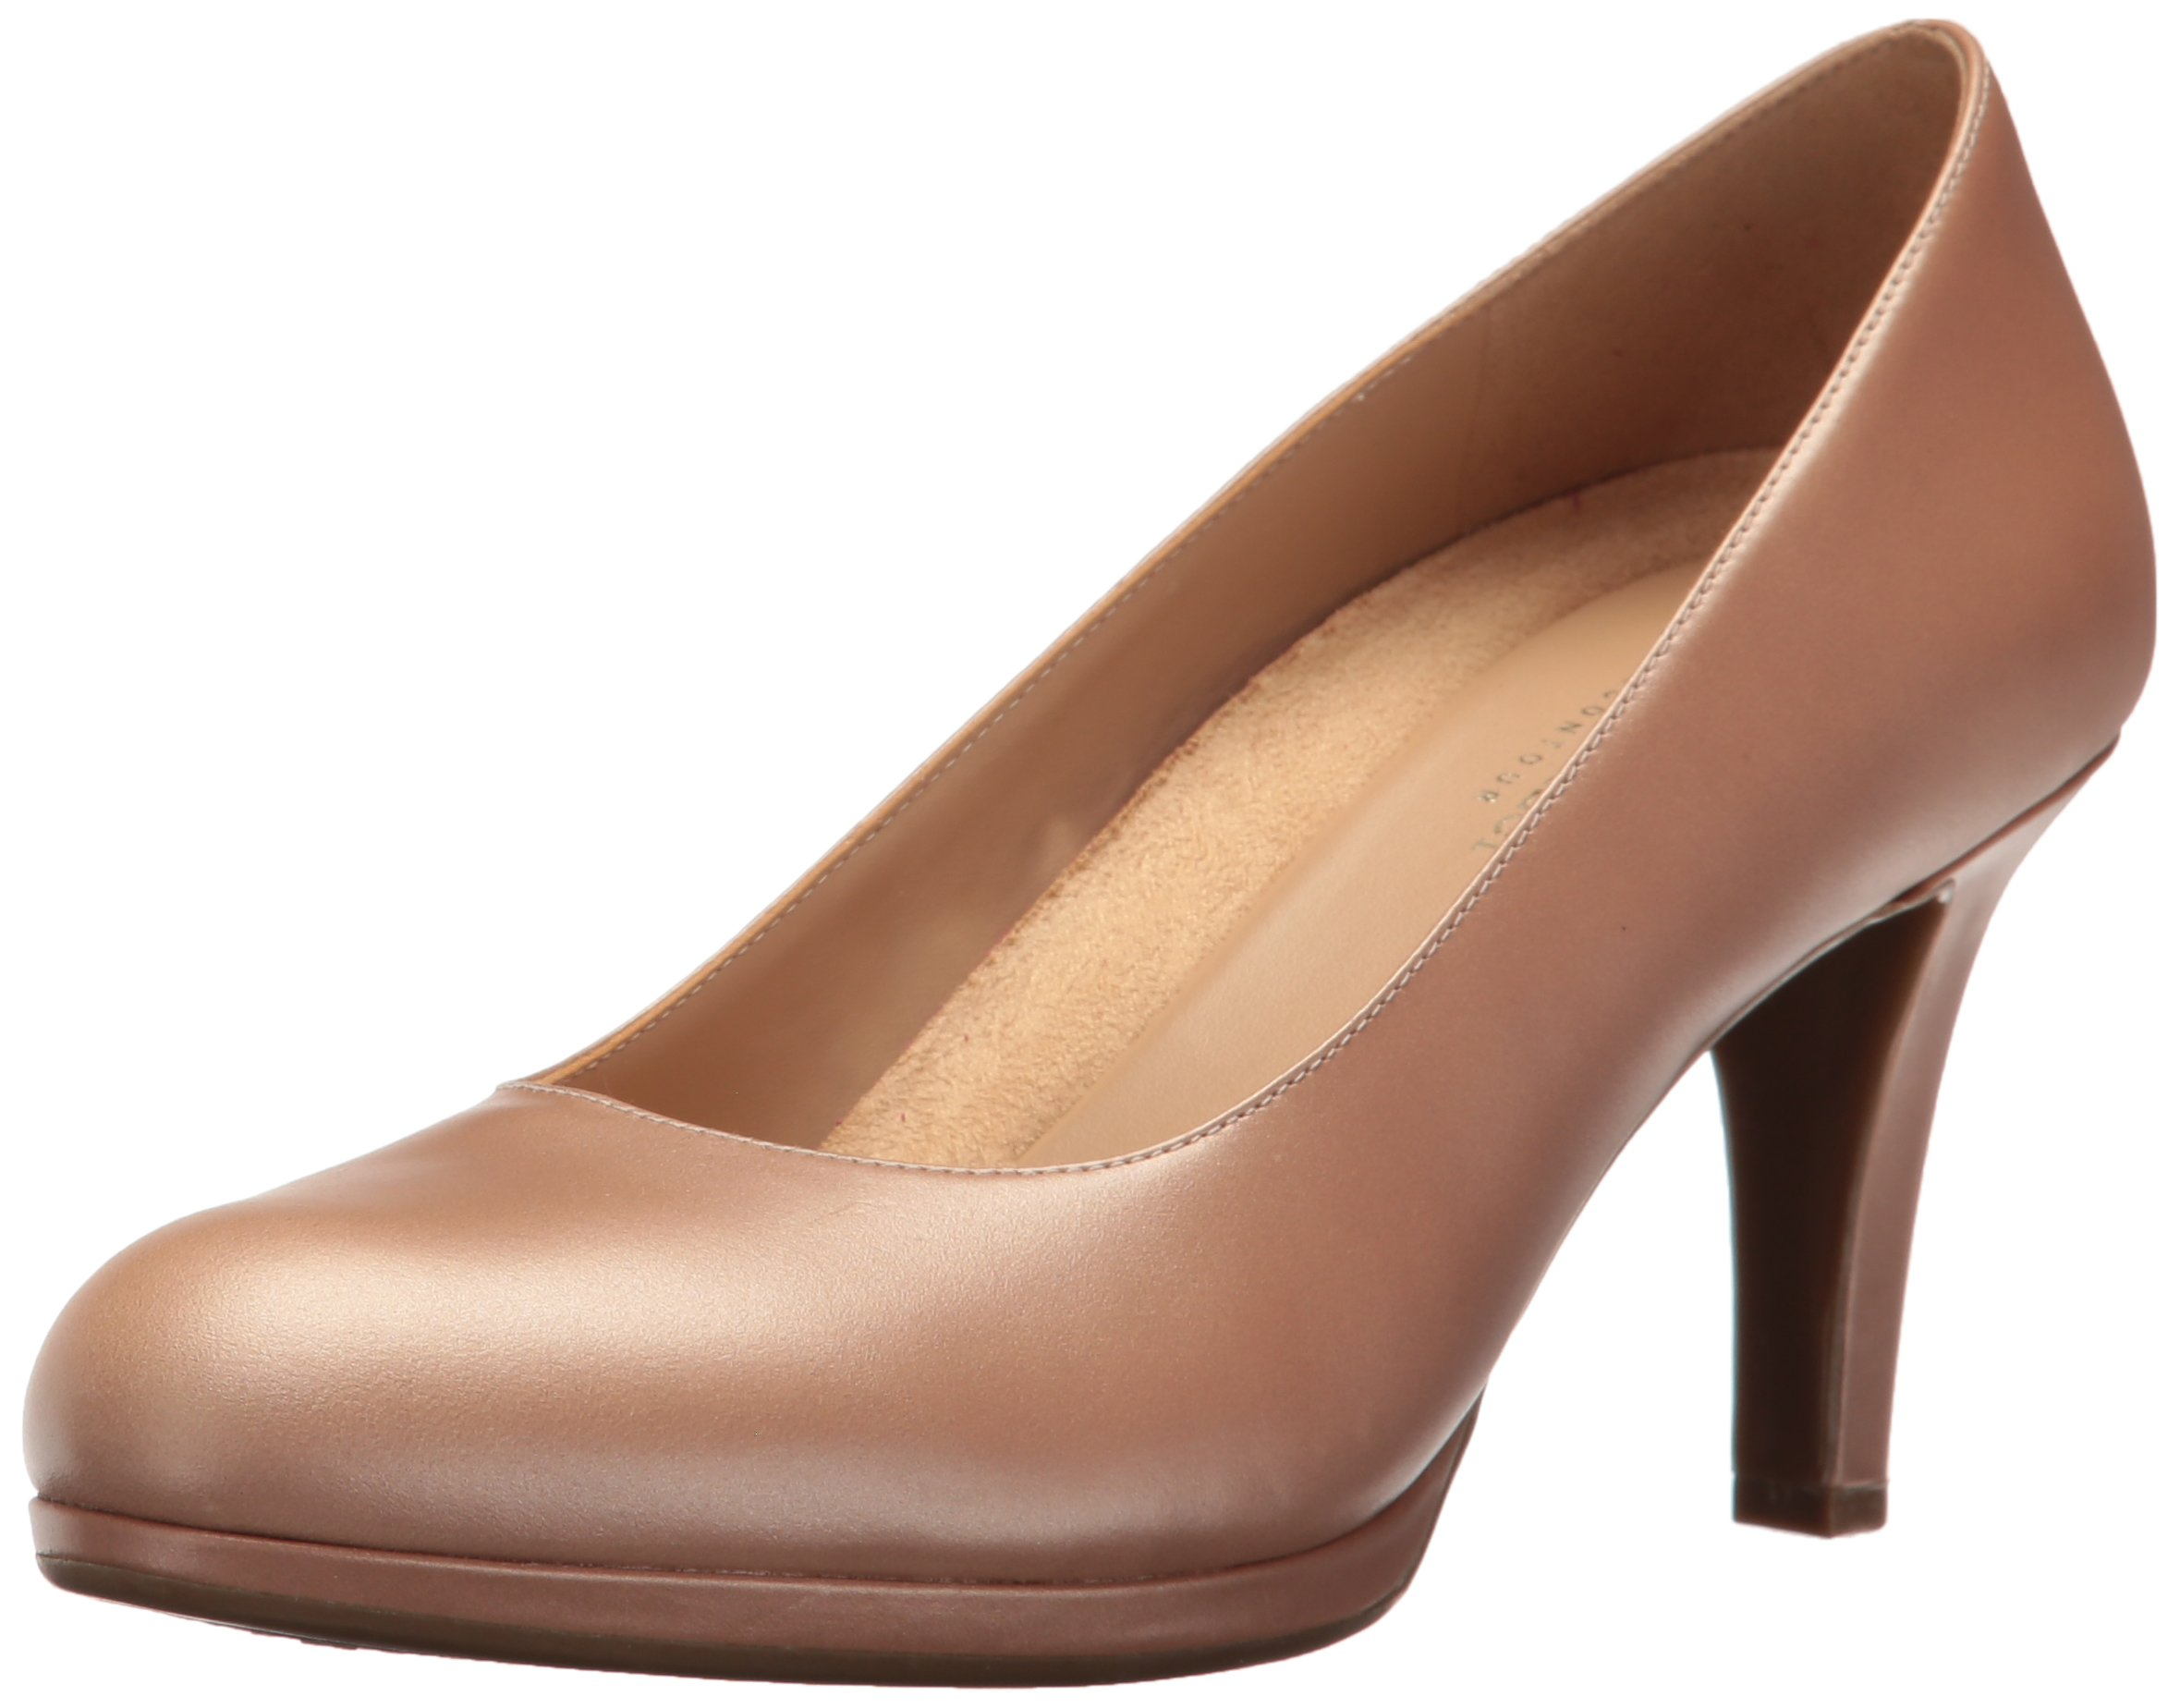 Naturalizer Women's Michelle Platform Pump, Chai, 8.5 M US